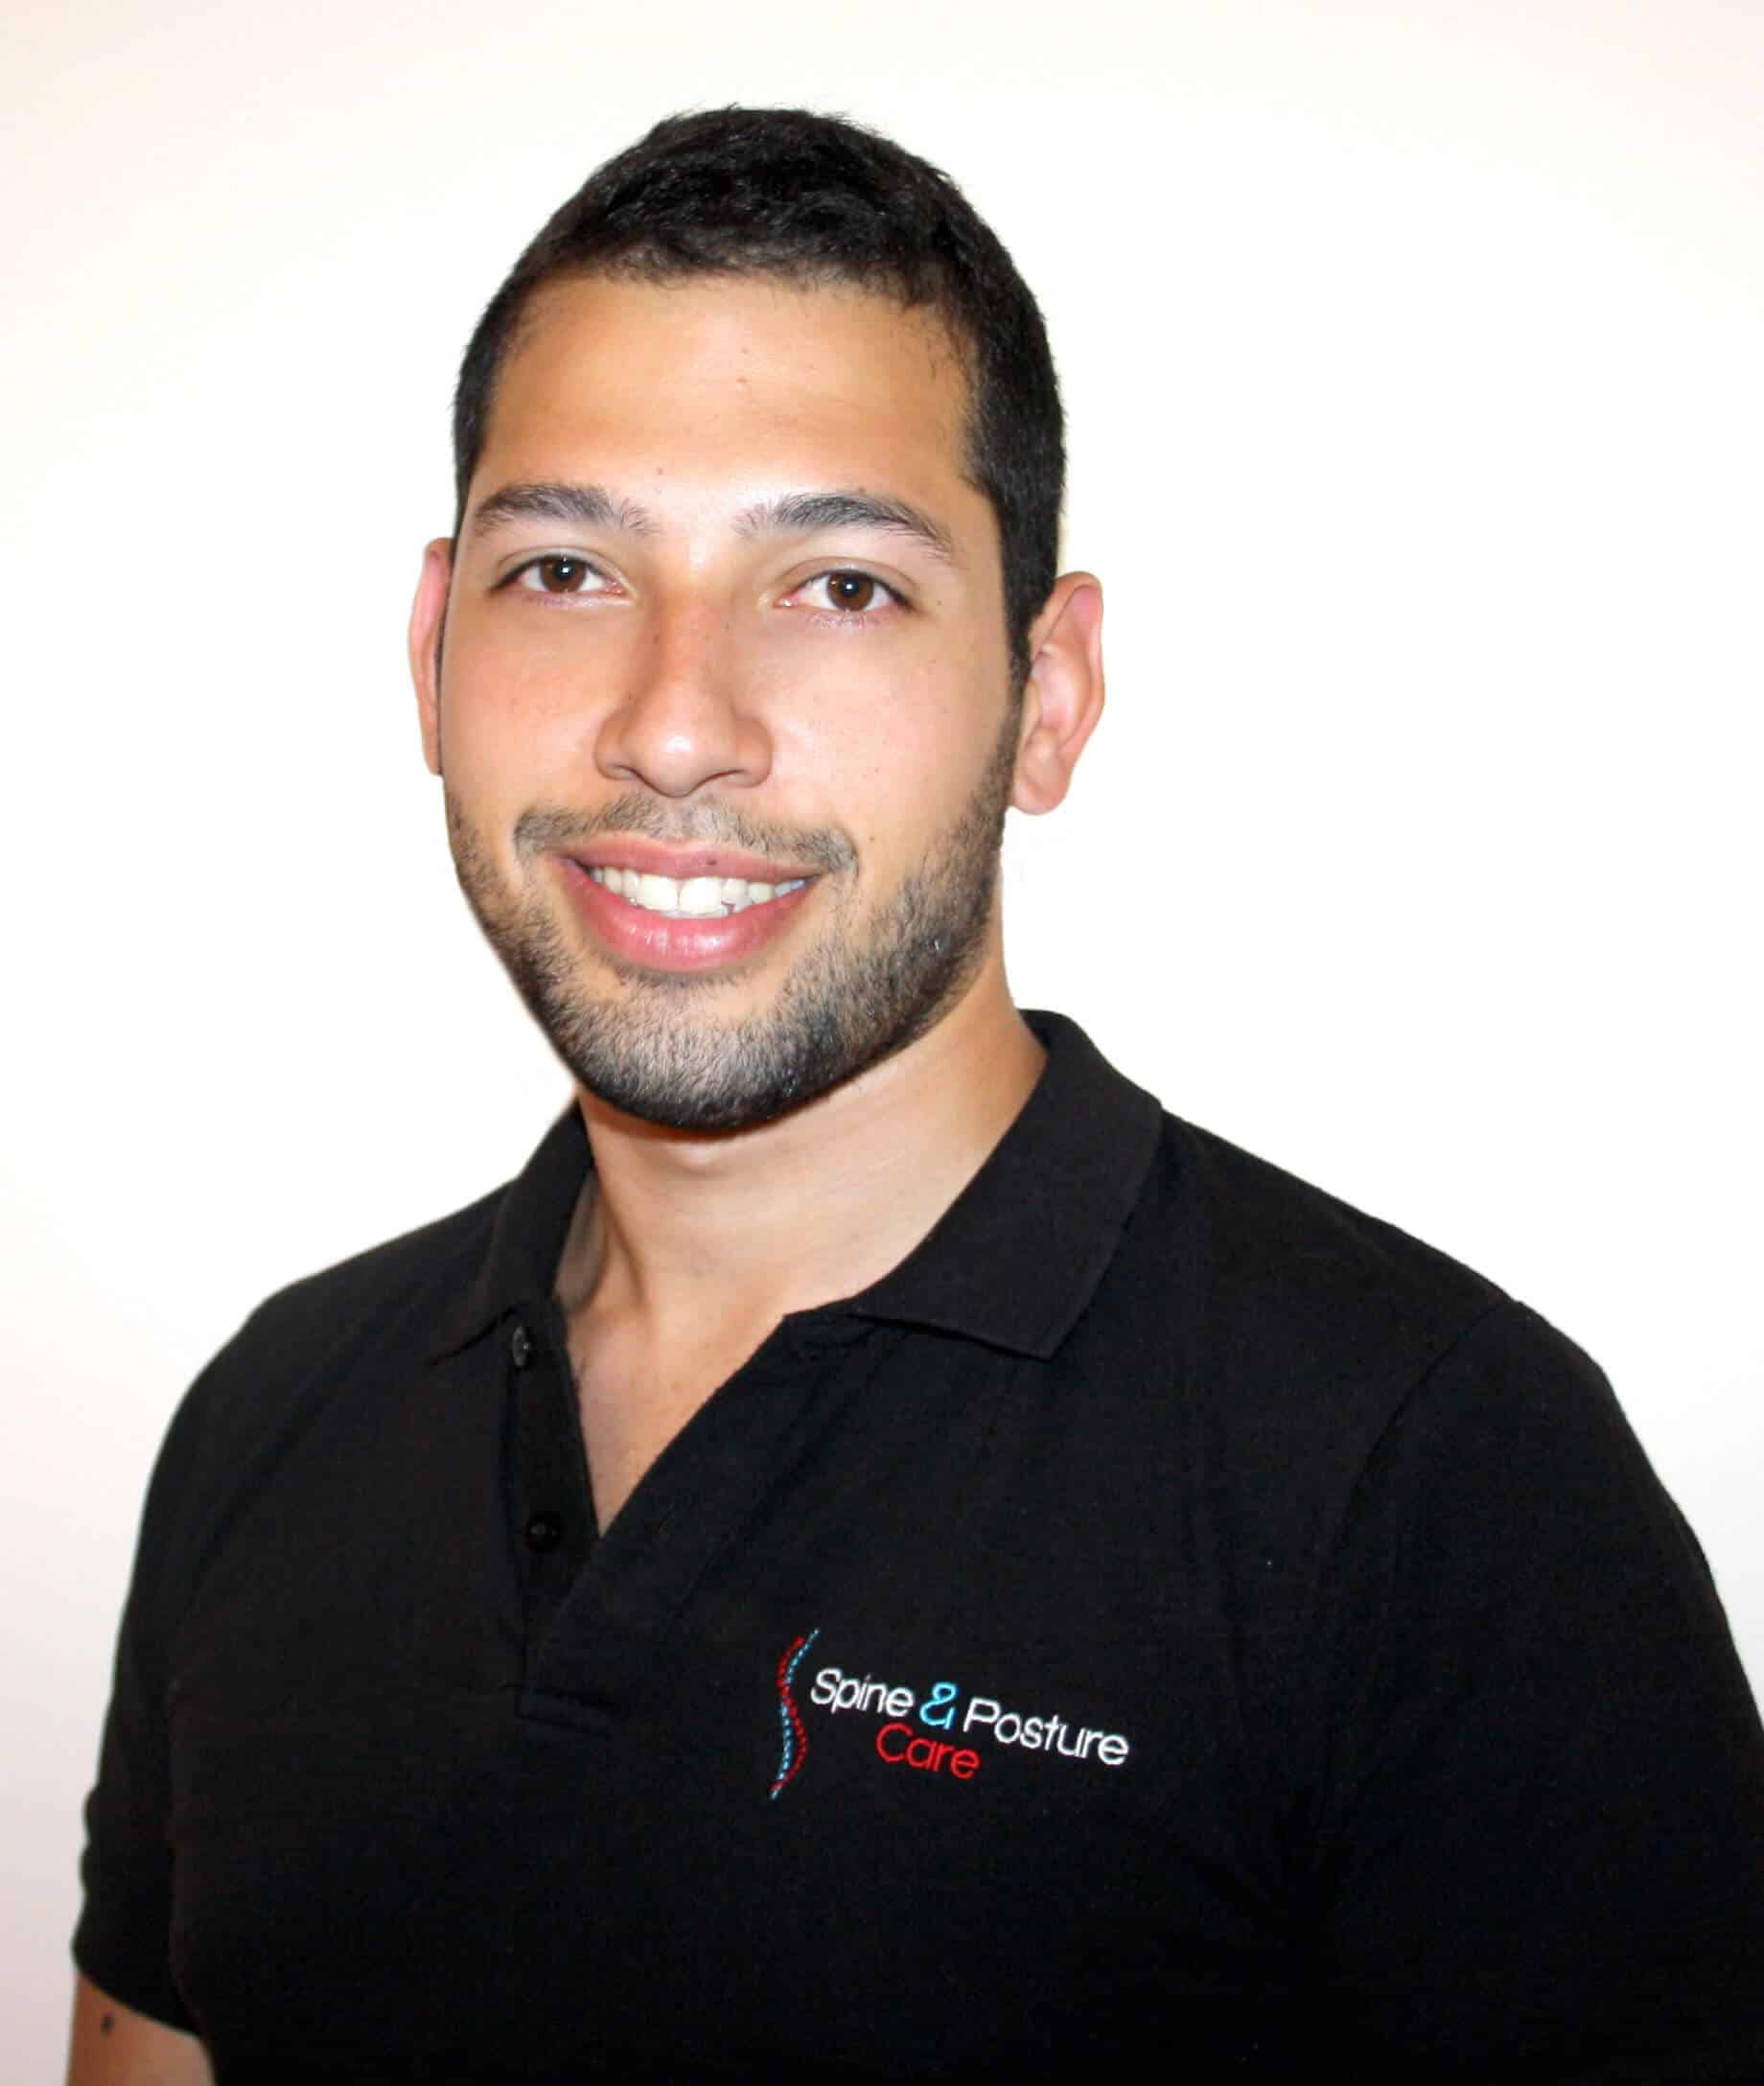 Mark El-Hayek chiropractor of Spine and Posture Care in Sydney CBD